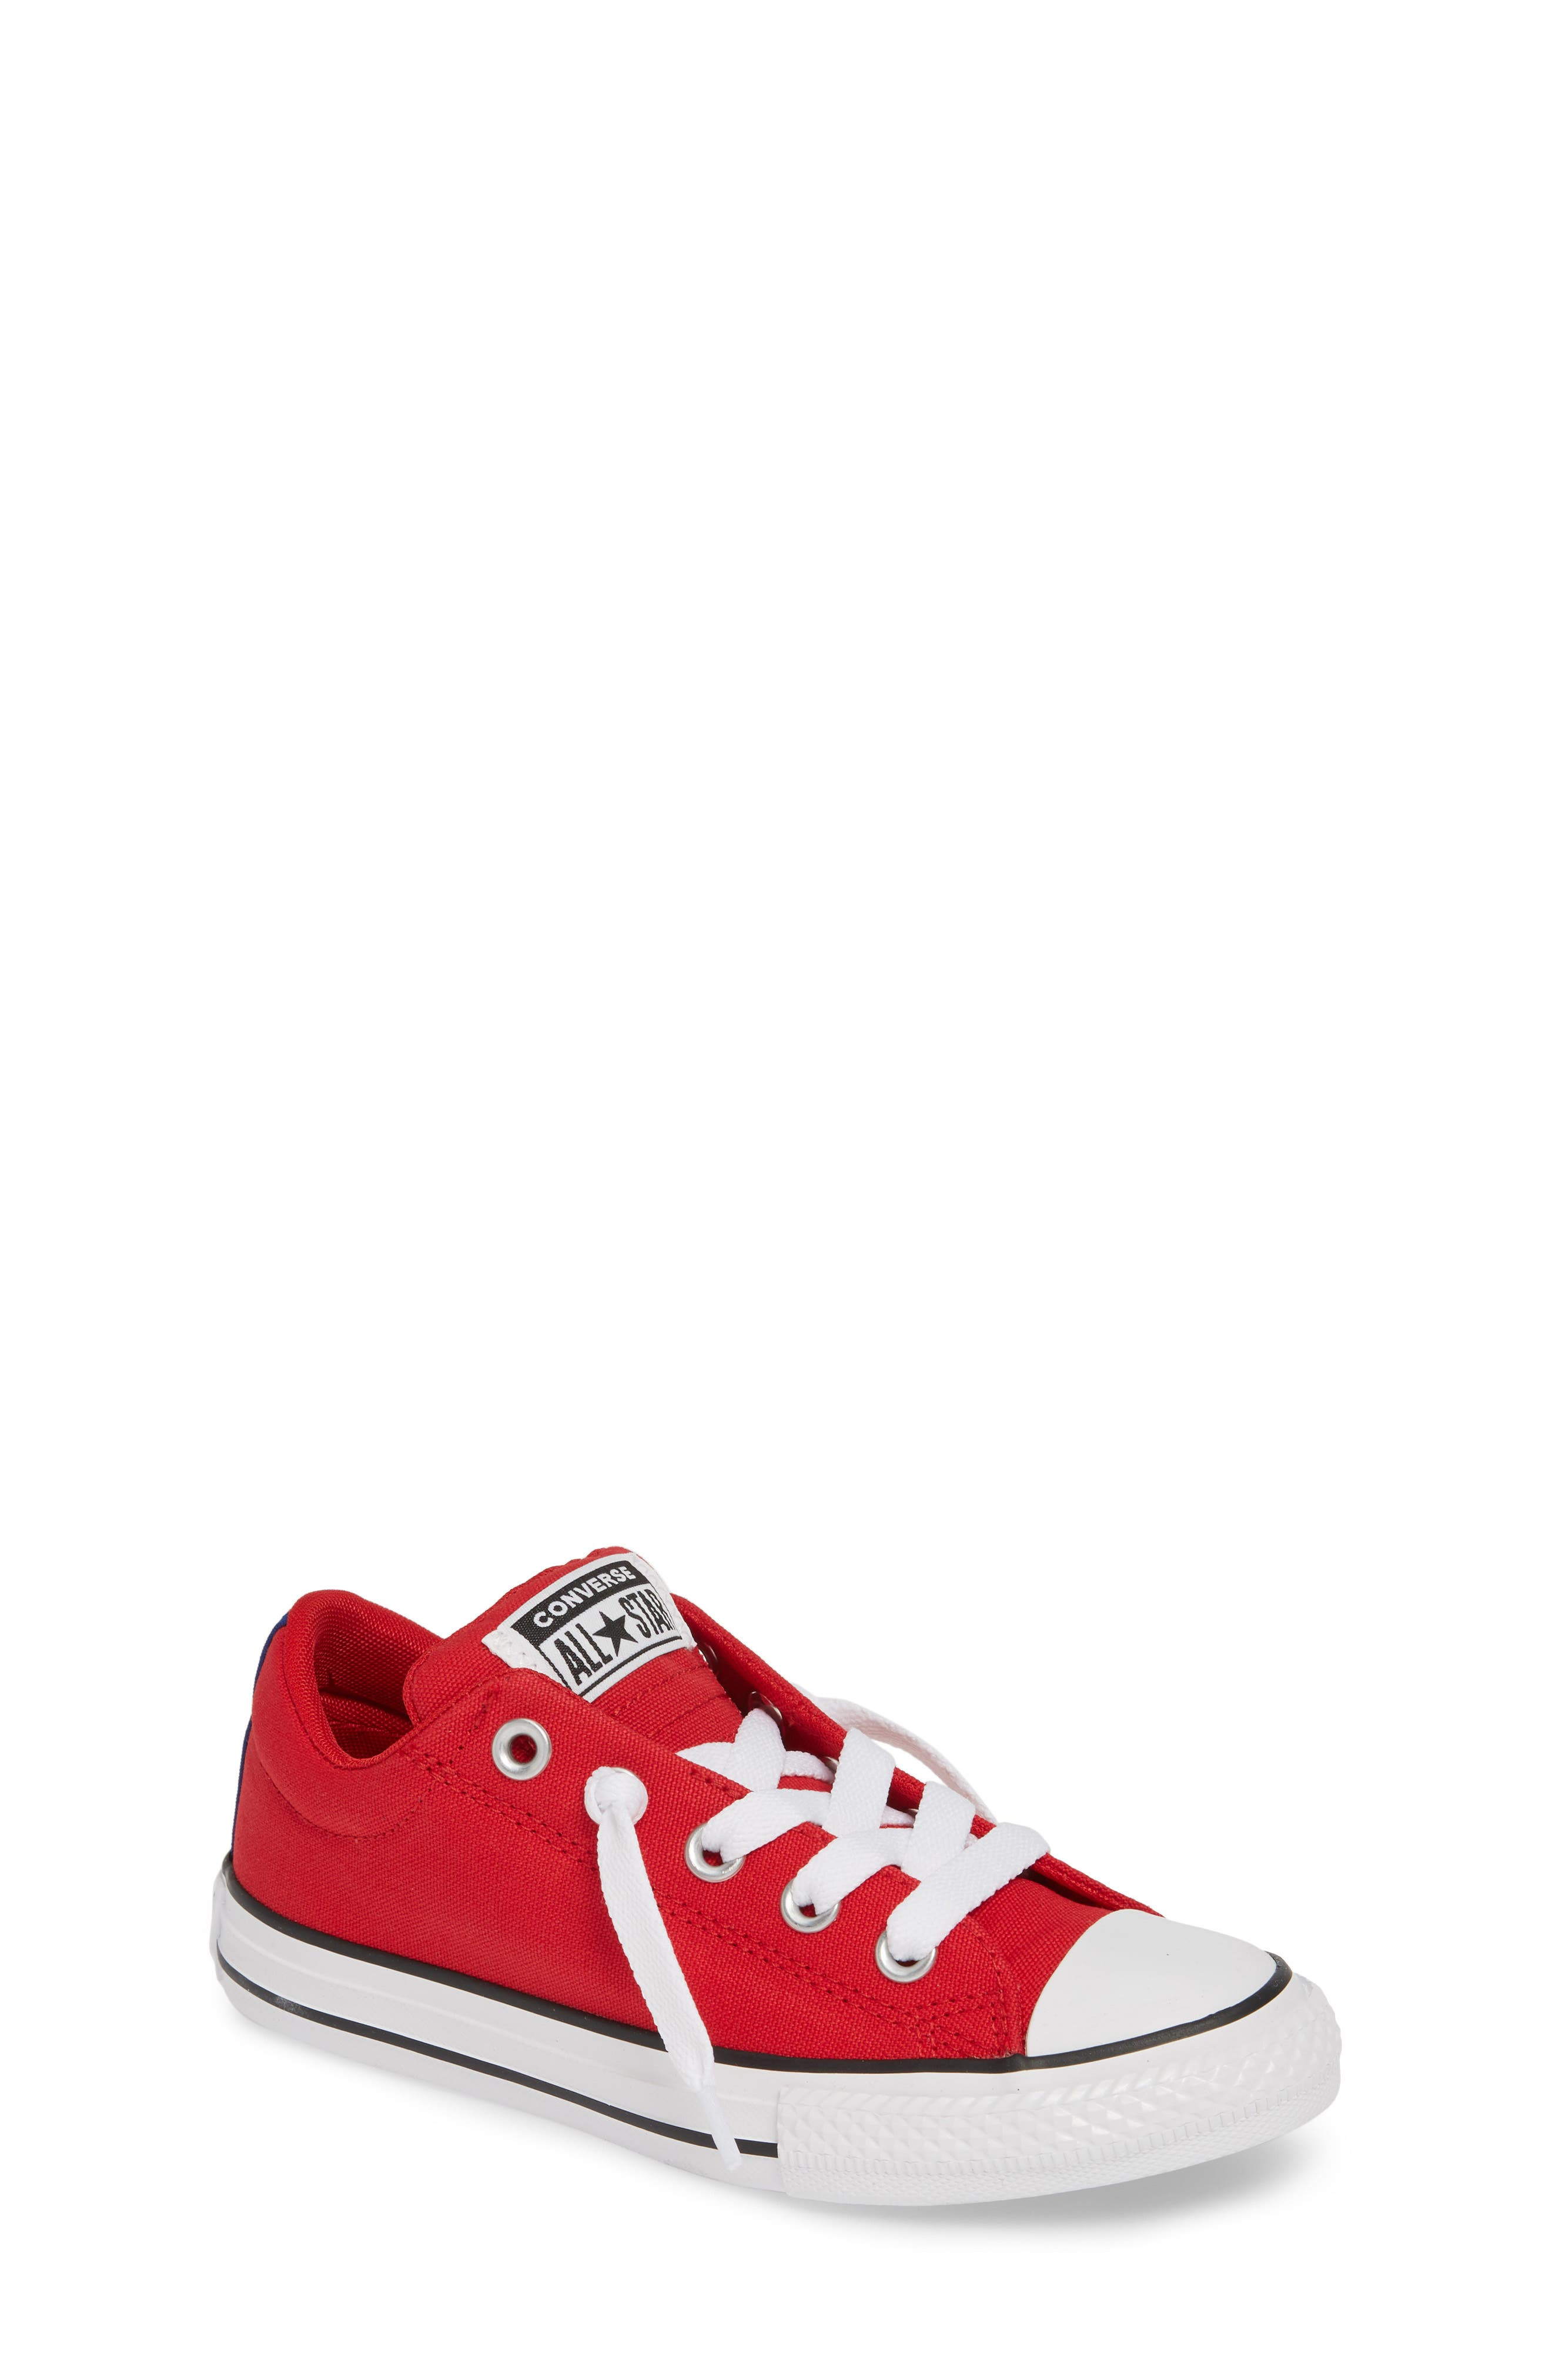 Converse - Boys Sneakers   Athletic Shoes - Kids  Shoes and Boots to ... aefb2f897ffe4